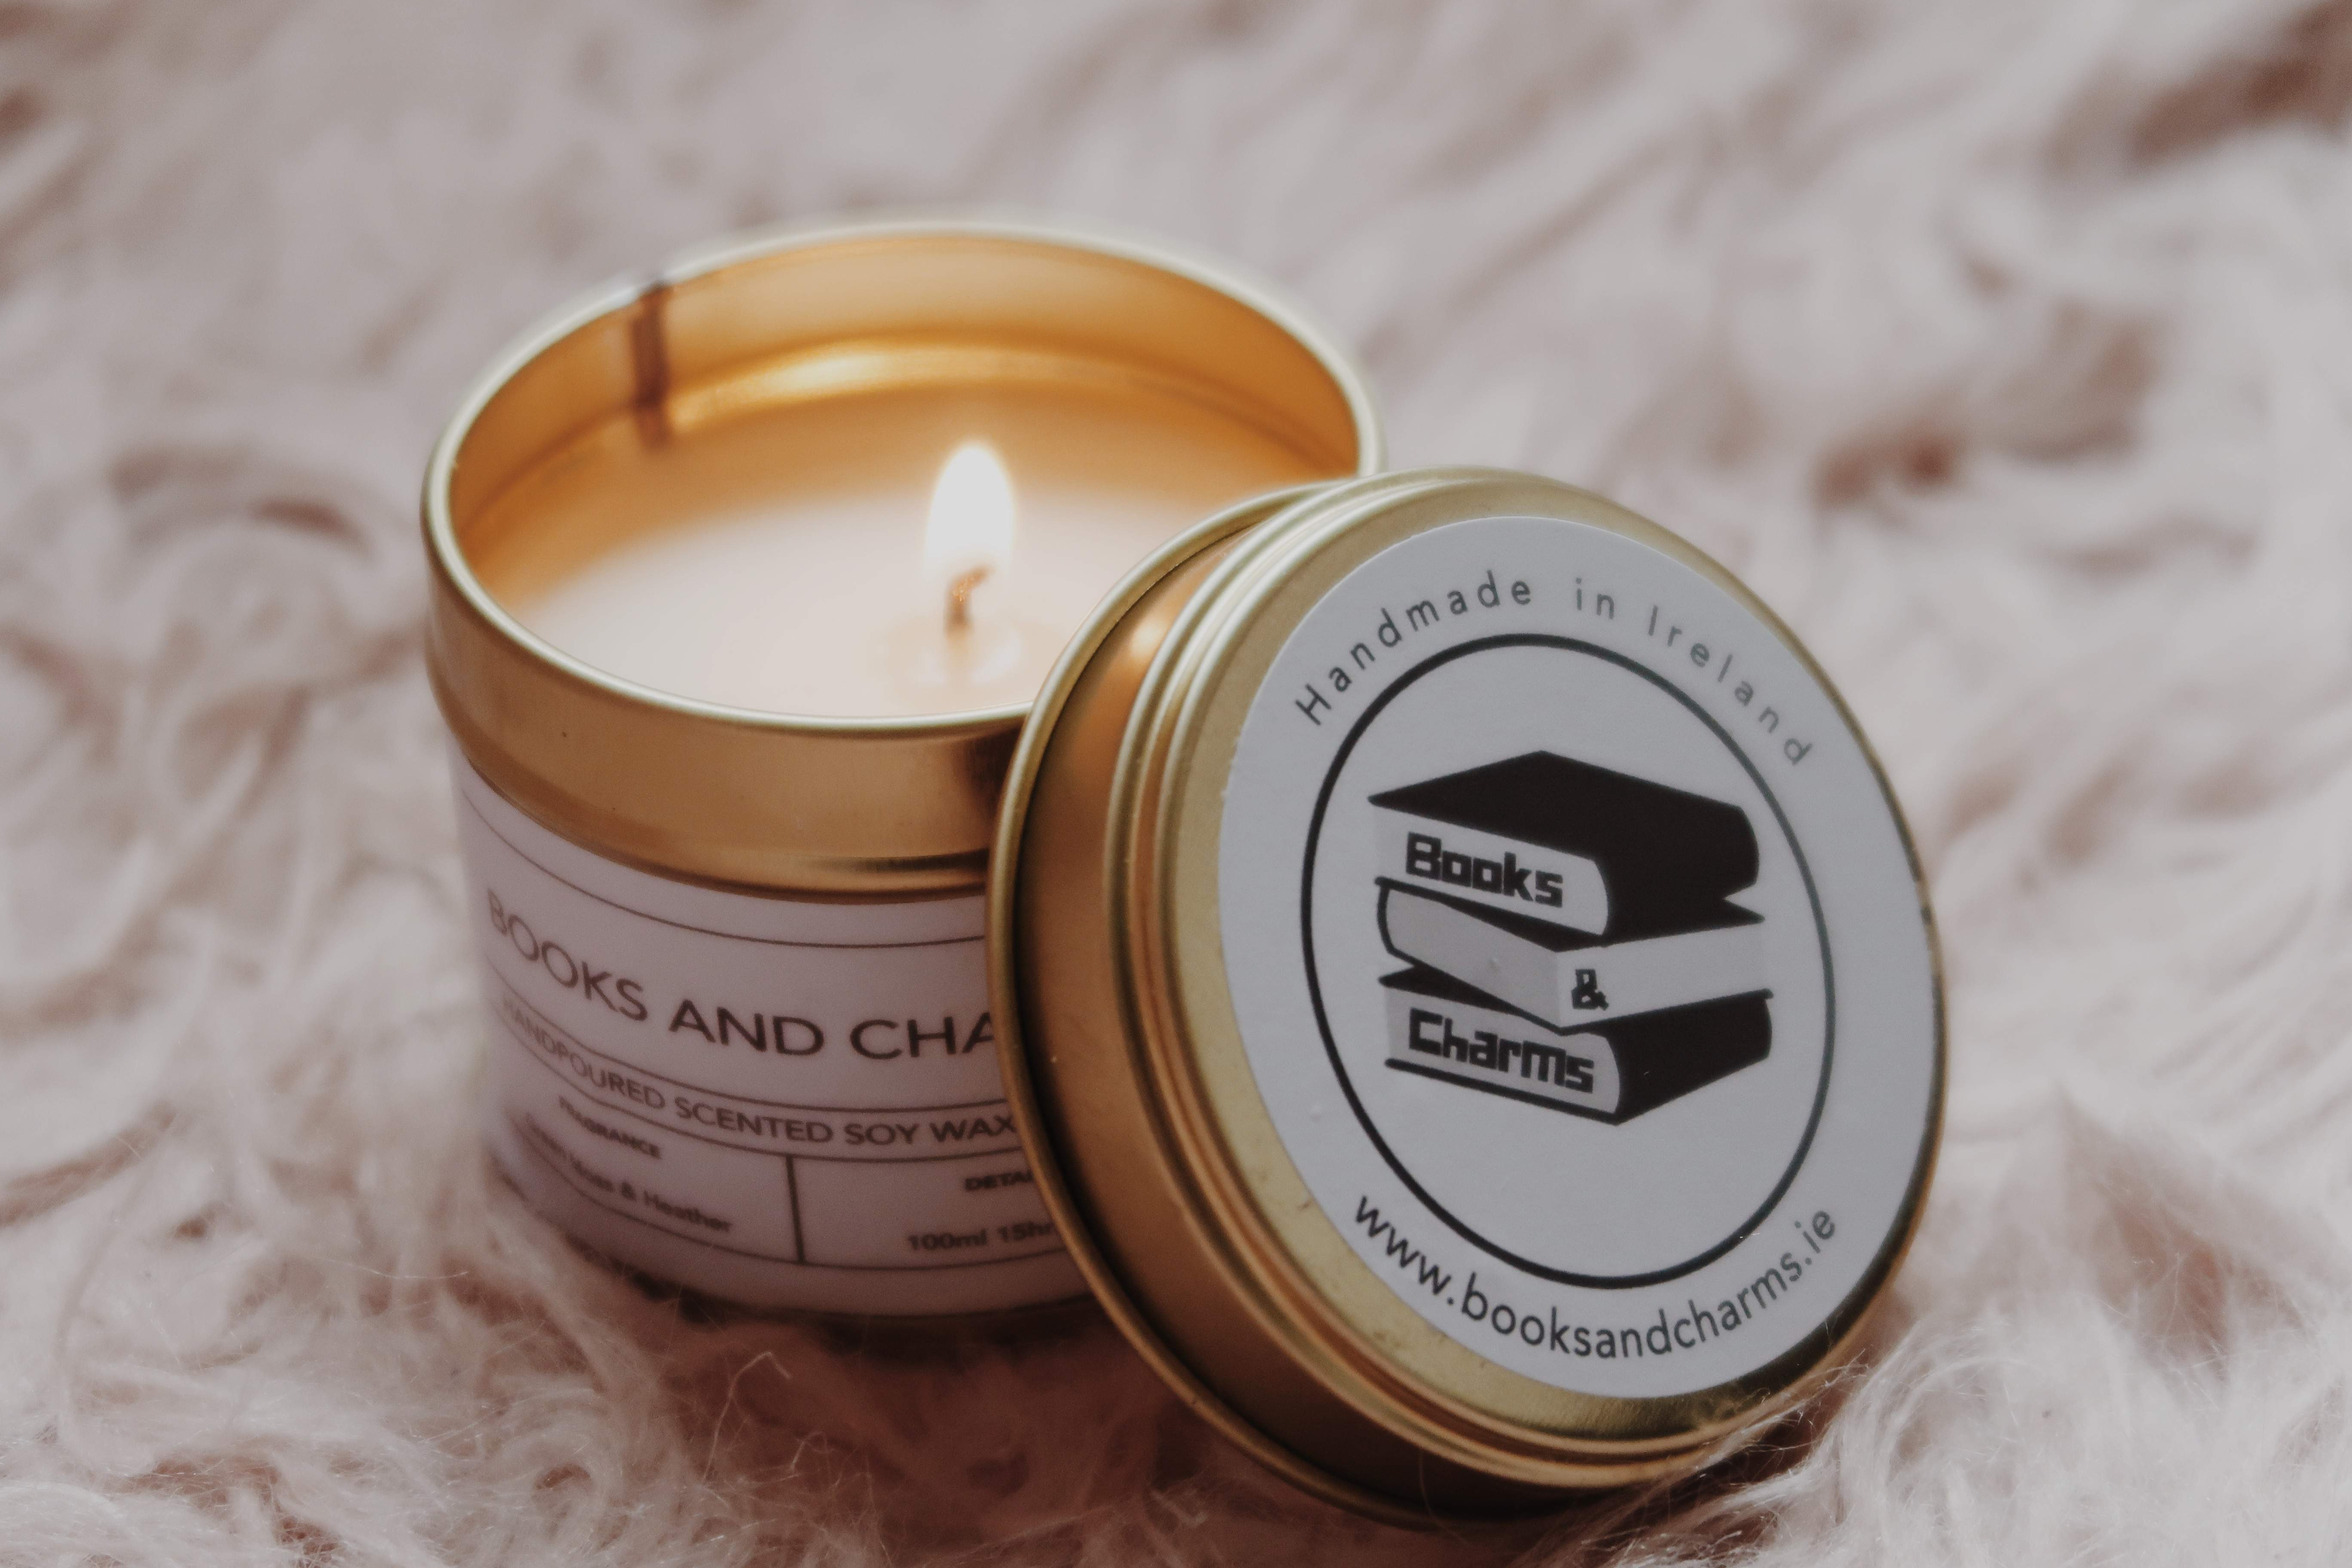 Books and Charms Candle